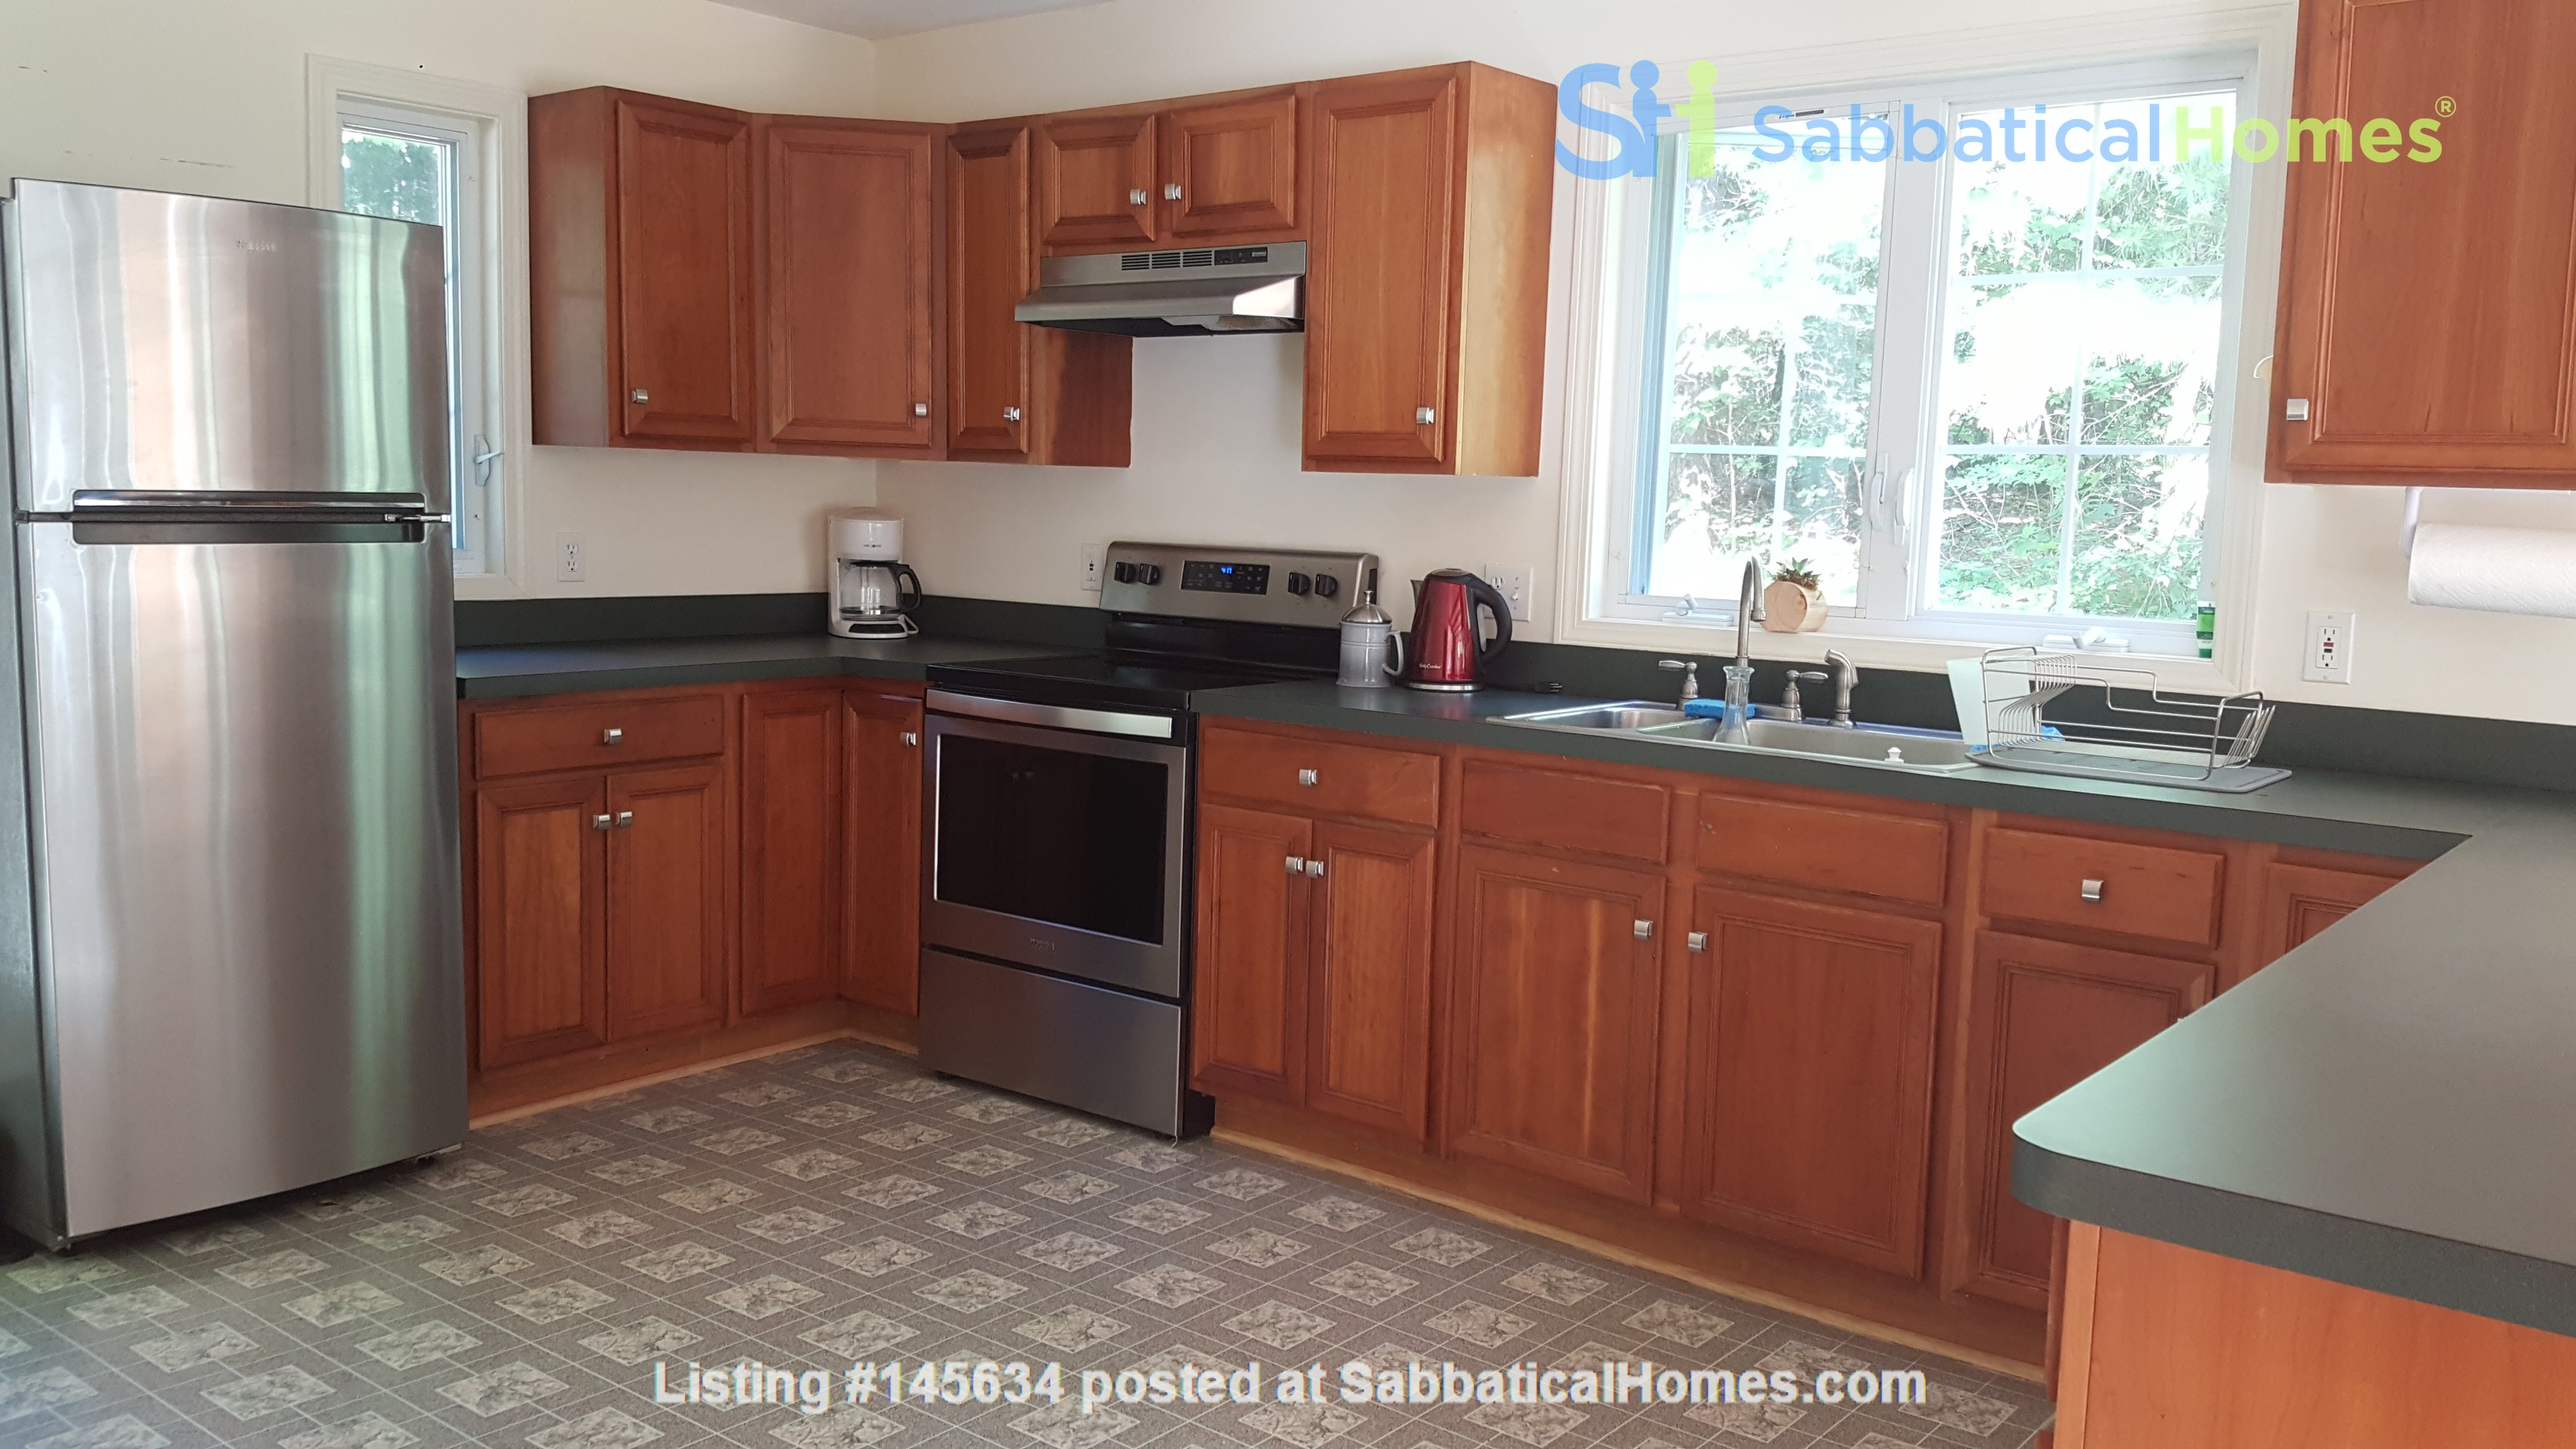 2 bedroom country house / 25 miles North of Boston and Cambridge Home Rental in Andover, Massachusetts, United States 3